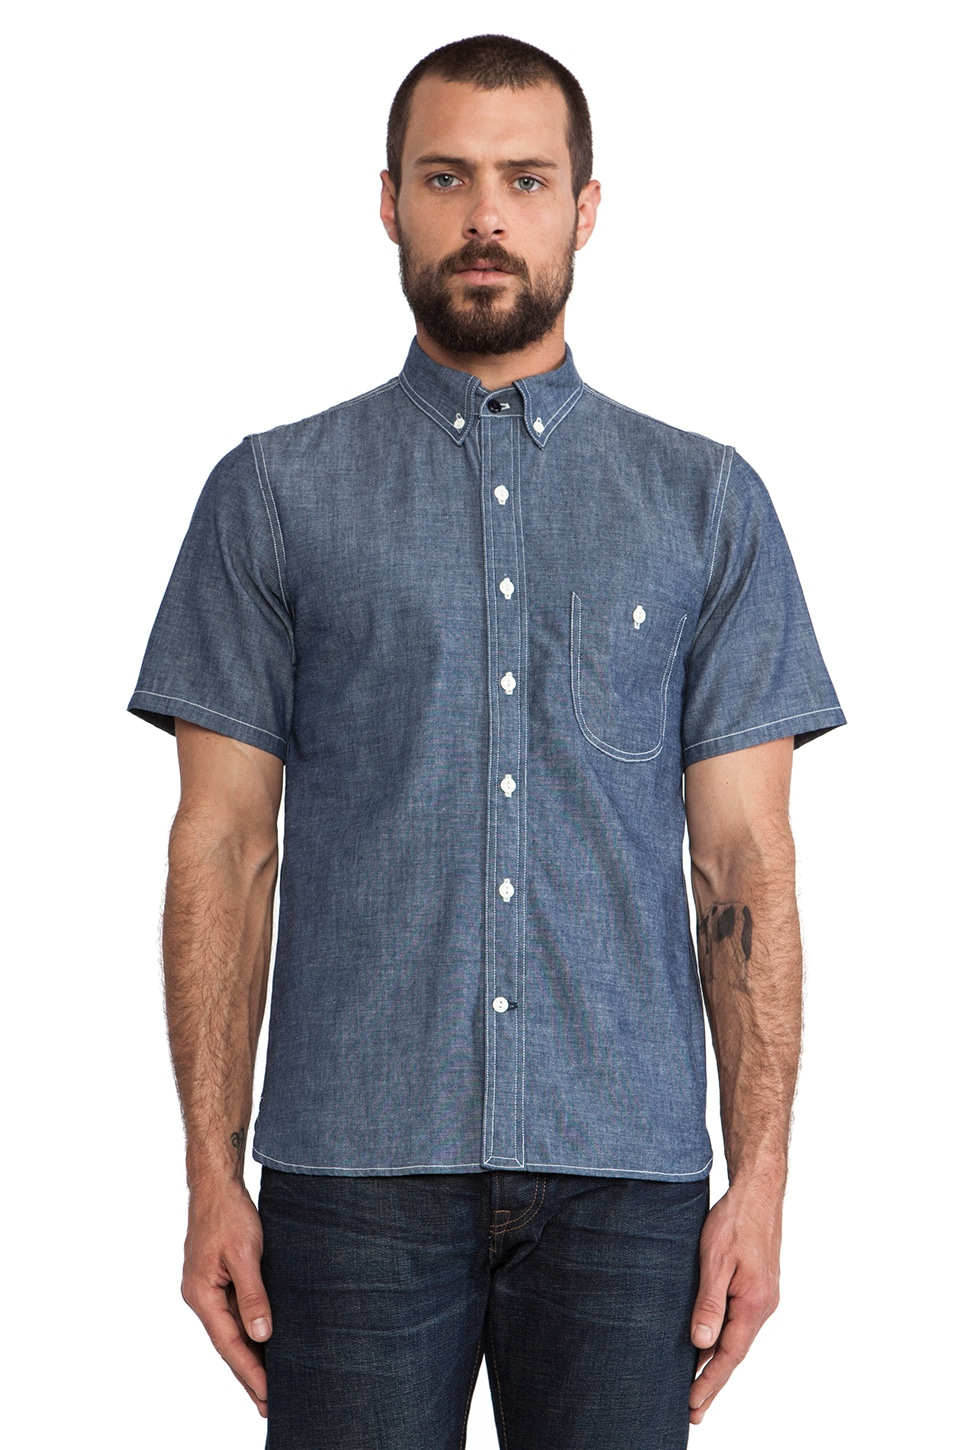 Rogue Territory Jumper Shirt Short Sleeve in Blue Raw Chambray